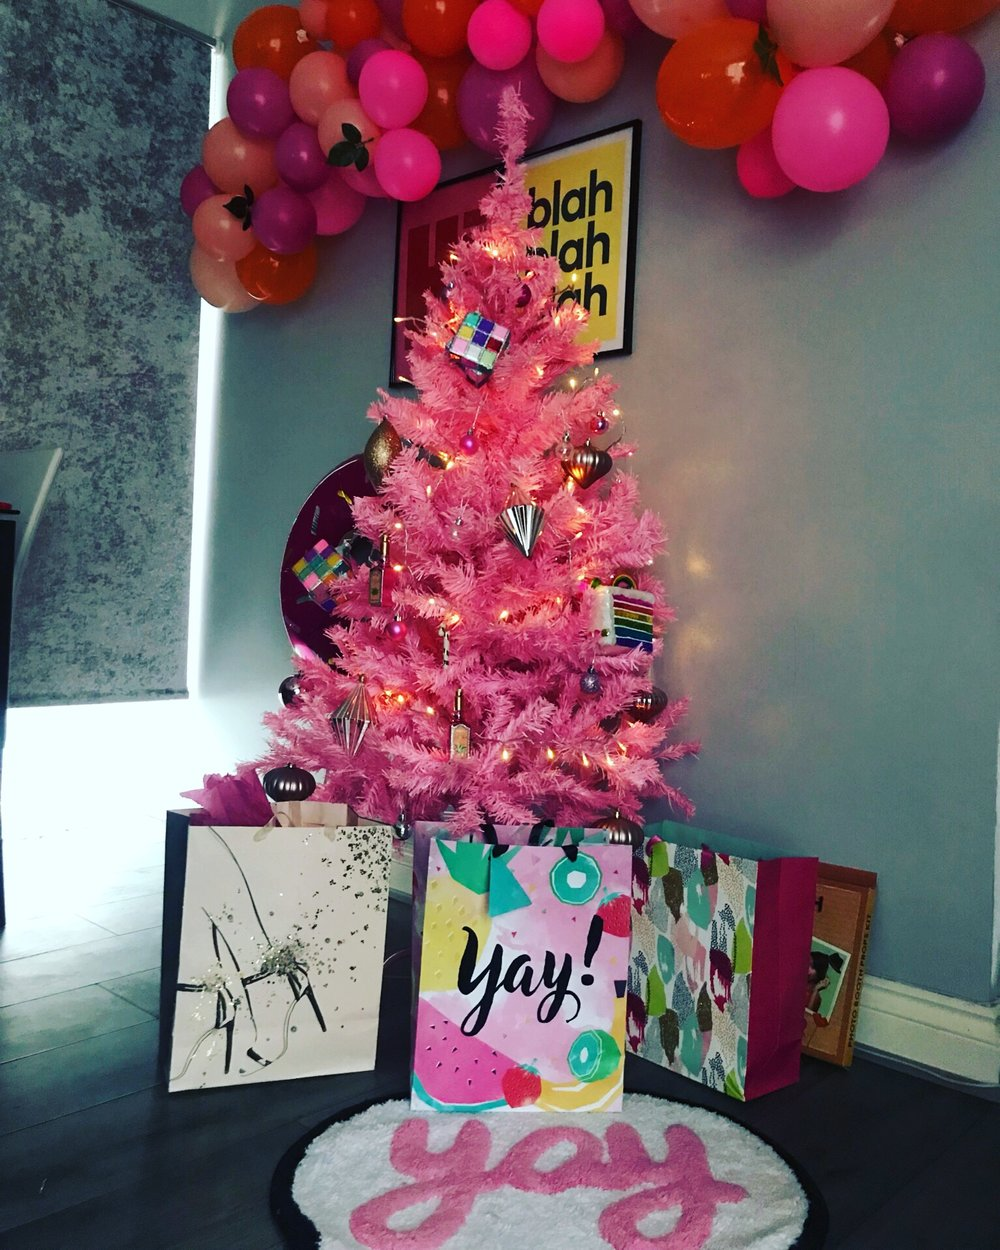 """CHRISTMAS 2018: THE ULTIMATE GIFT GUIDE - Christmas has been a special time of the year for me for as long as I can remember. There's something about the feeling of """"togetherness"""" that I appreciate most at Christmas than I do throughout the year. Strange, I know!For me, it's all about giving. I remember being a little girl and being so spoiled with gifts at Christmas; by family, friends and even at School. Since then, I've realised that the most exciting part for me will be to watch my children share that same joy someday. But until then, it's just me, my fur boys and the fam! & I'm looking forward to my favourite part of all during the festive period… the food and the shopping.Speaking of shopping, Christmas is literally just over a week away. & if you're stuck for some last minute ideas, I hope you find my Xmas gift guide useful.Have a good one!Sx"""